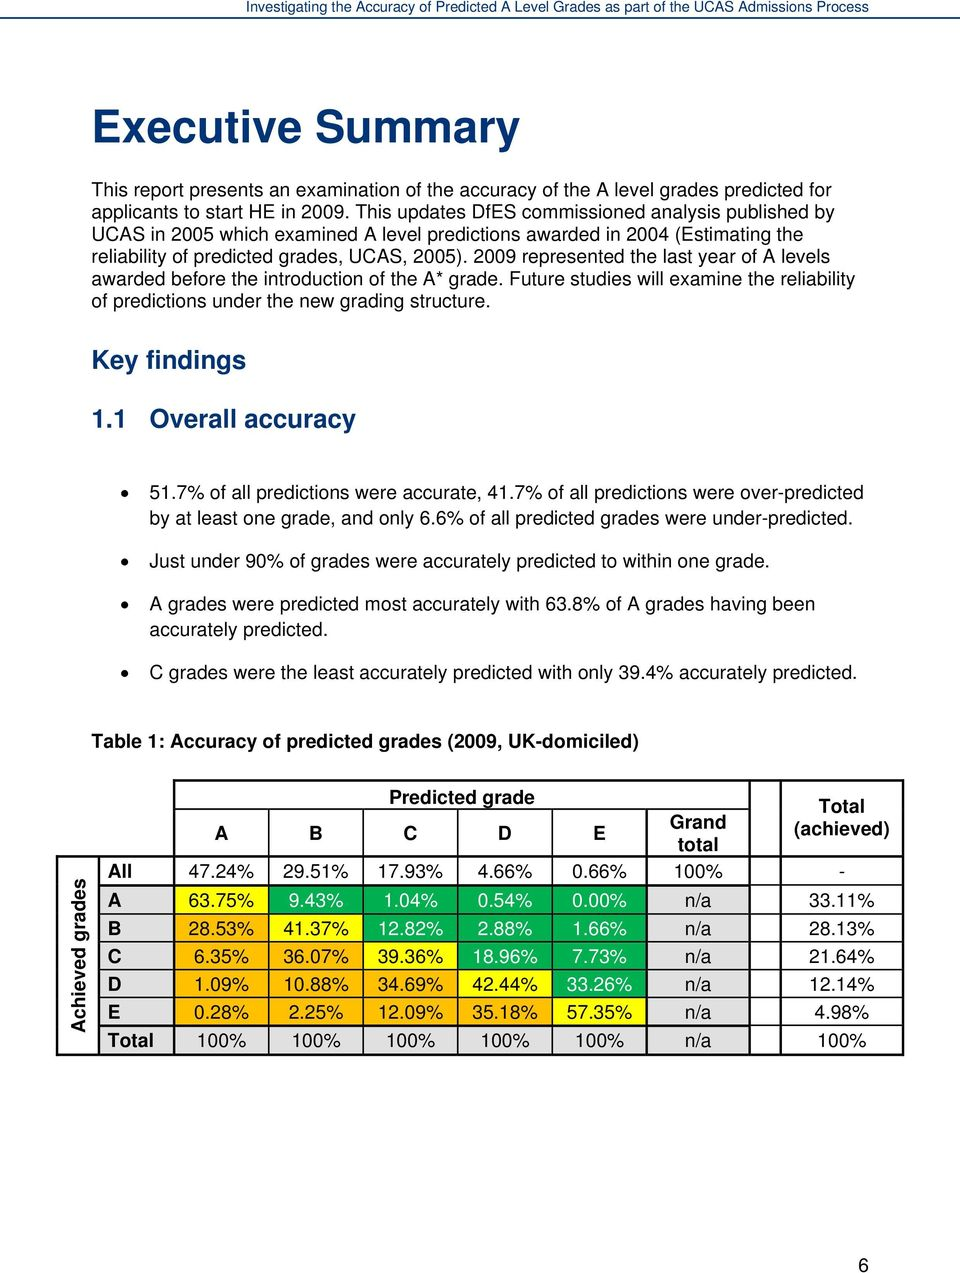 2009 represented the last year of A levels awarded before the introduction of the A* grade. Future studies will examine the reliability of predictions under the new grading structure. Key findings 1.